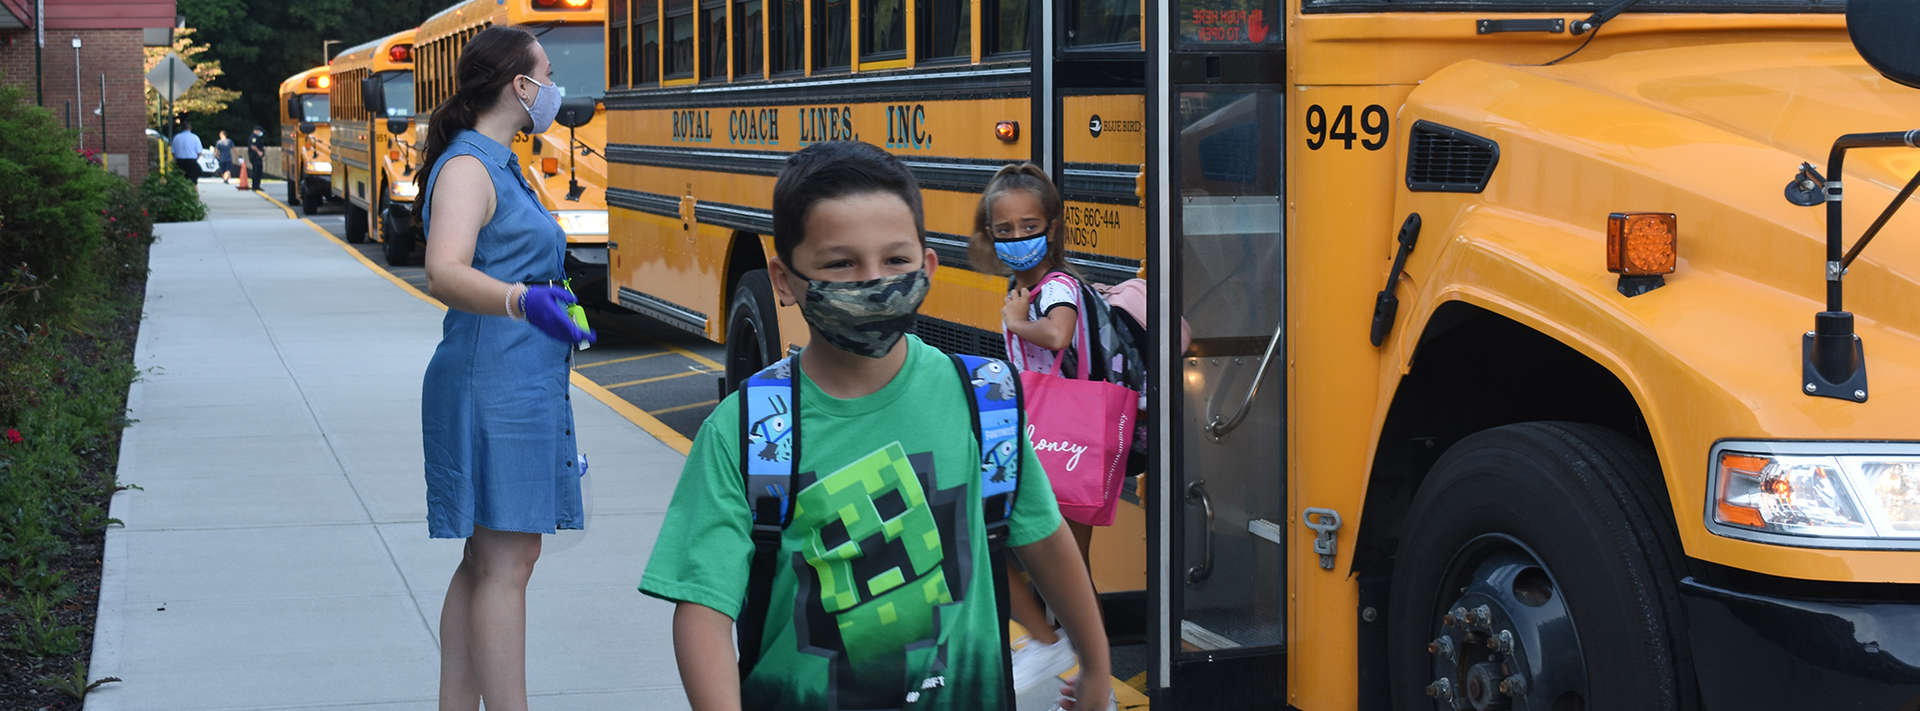 boy with mask exits the.bus